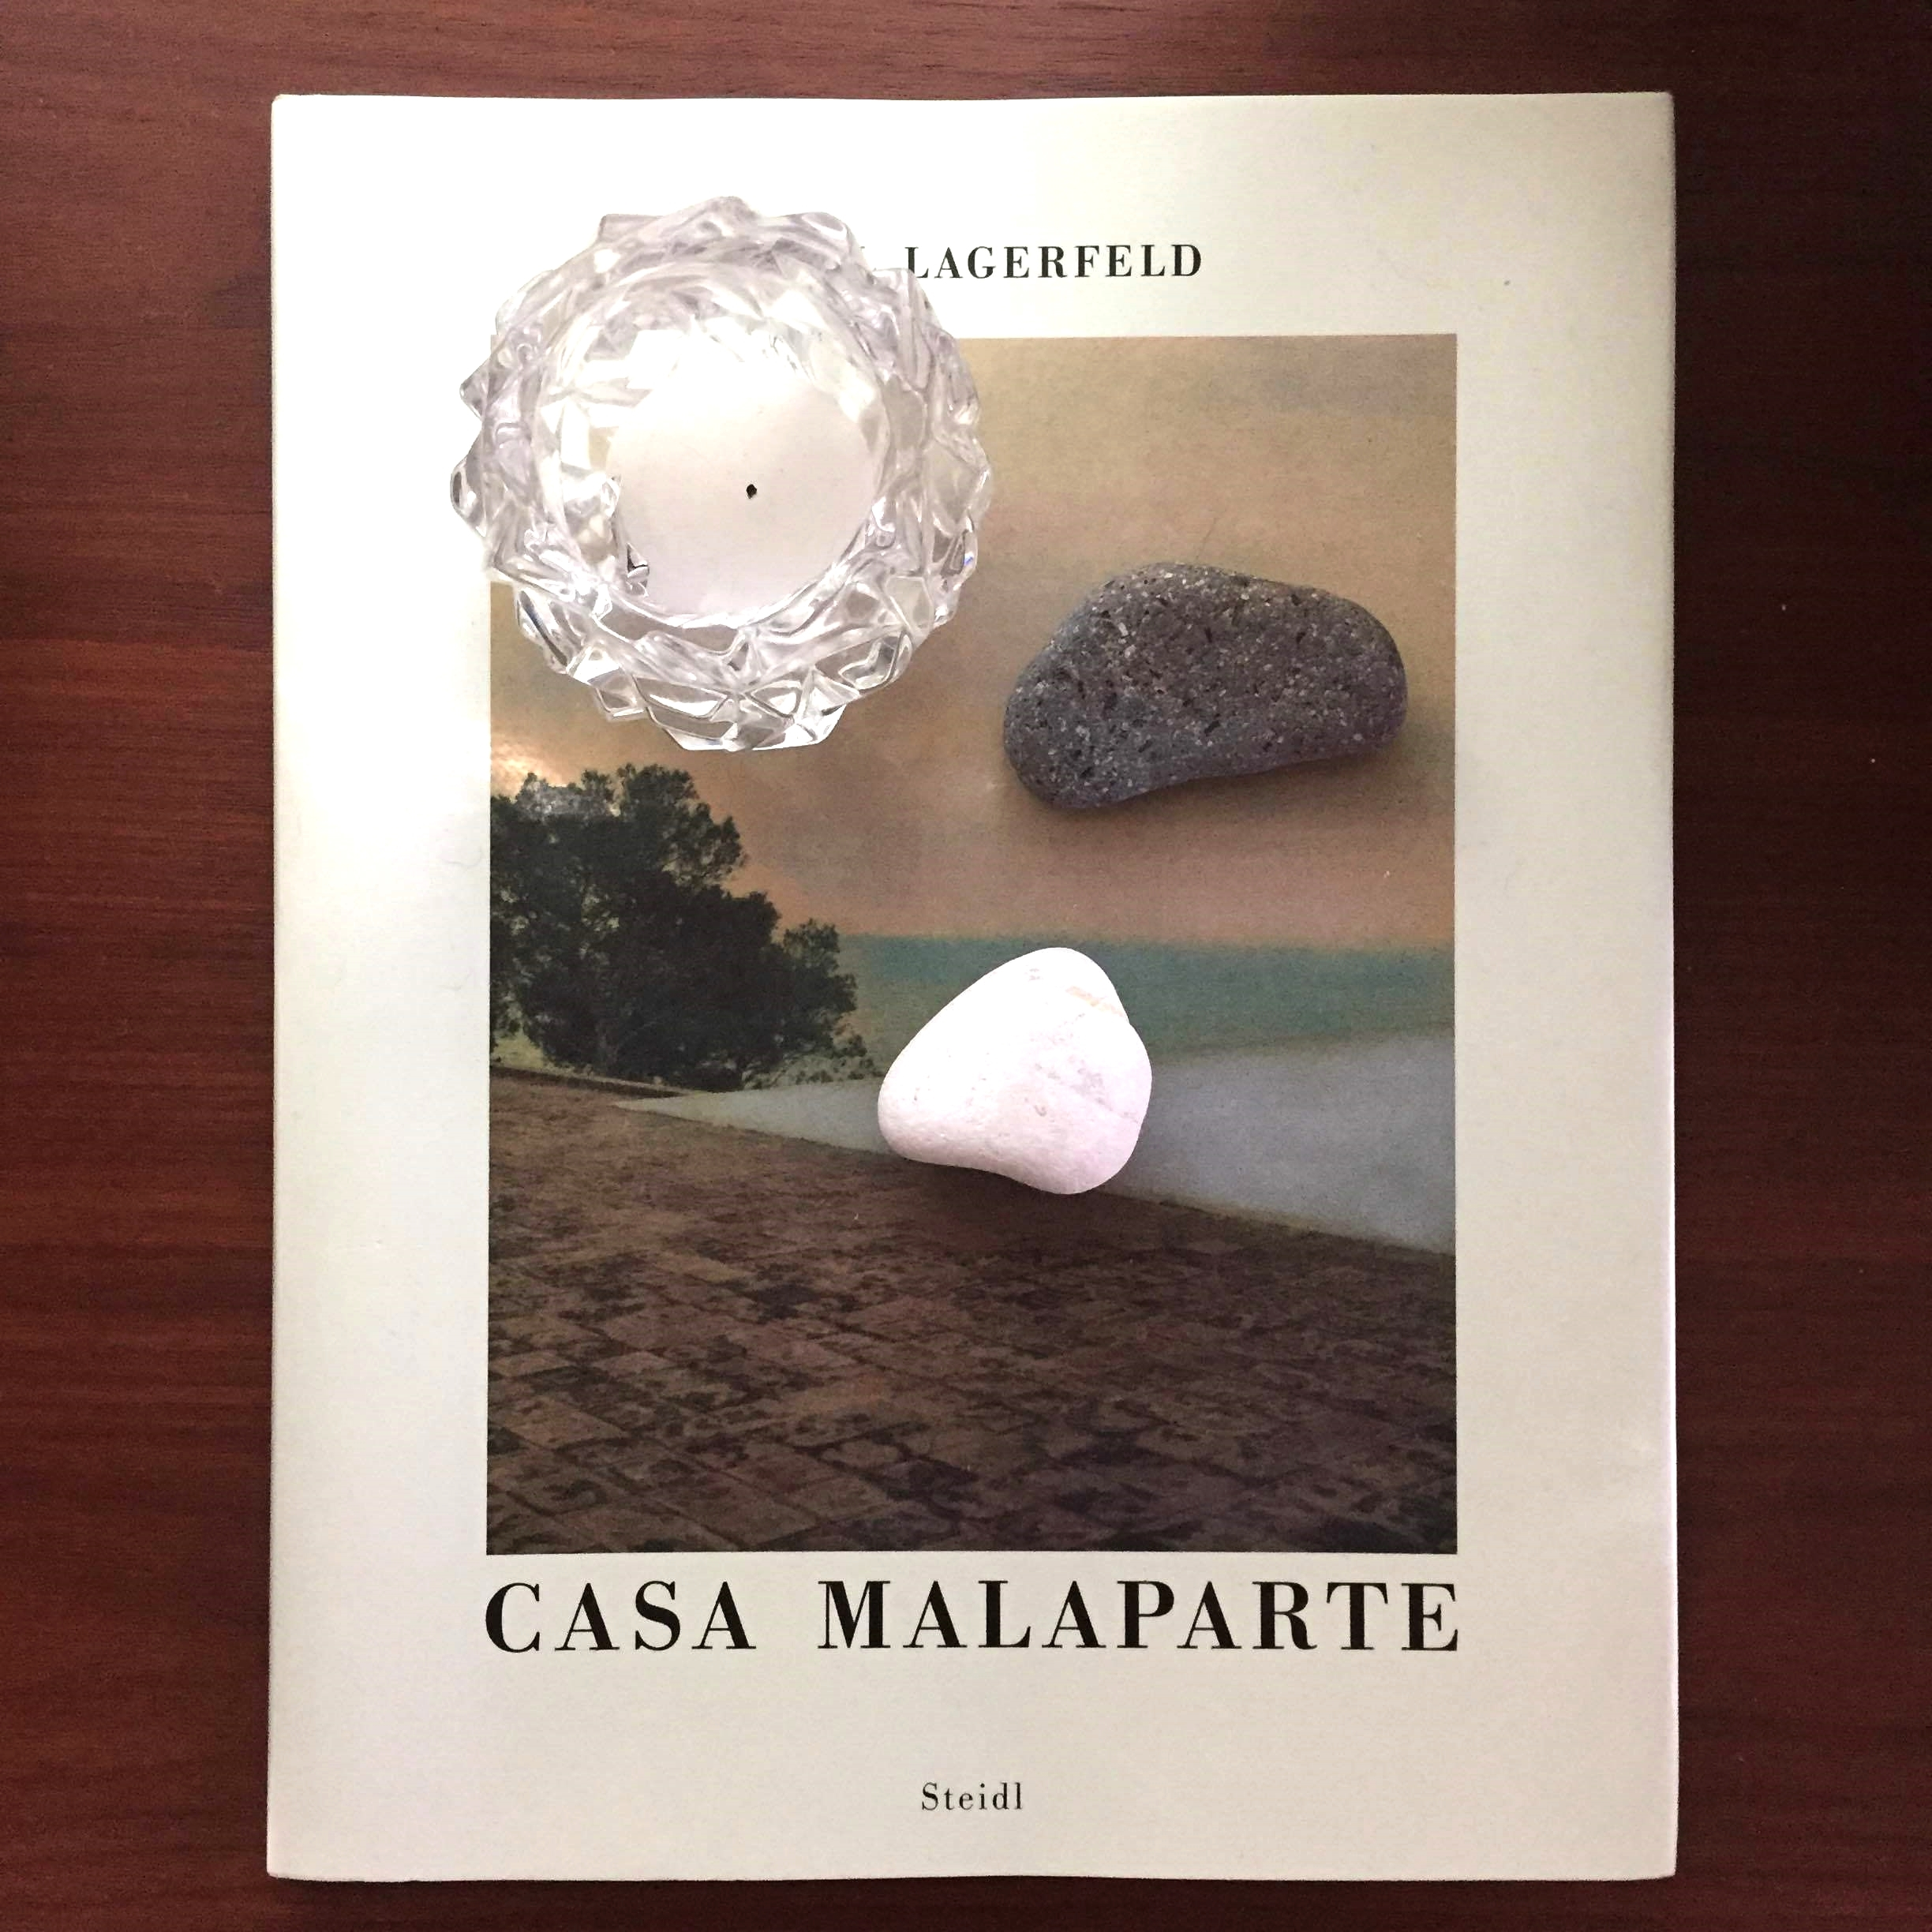 Seeing Casa Malaparte in Capri was an ultimate architectural moment for me. Year's later, I bought Karl Lagerfeld's  photo essay  on the house as a memory. It's displayed on a console,topped by rocks we picked up on the shore of another Italian island,Lisca Bianca. The  Tiffany  candleholder was a wedding present.